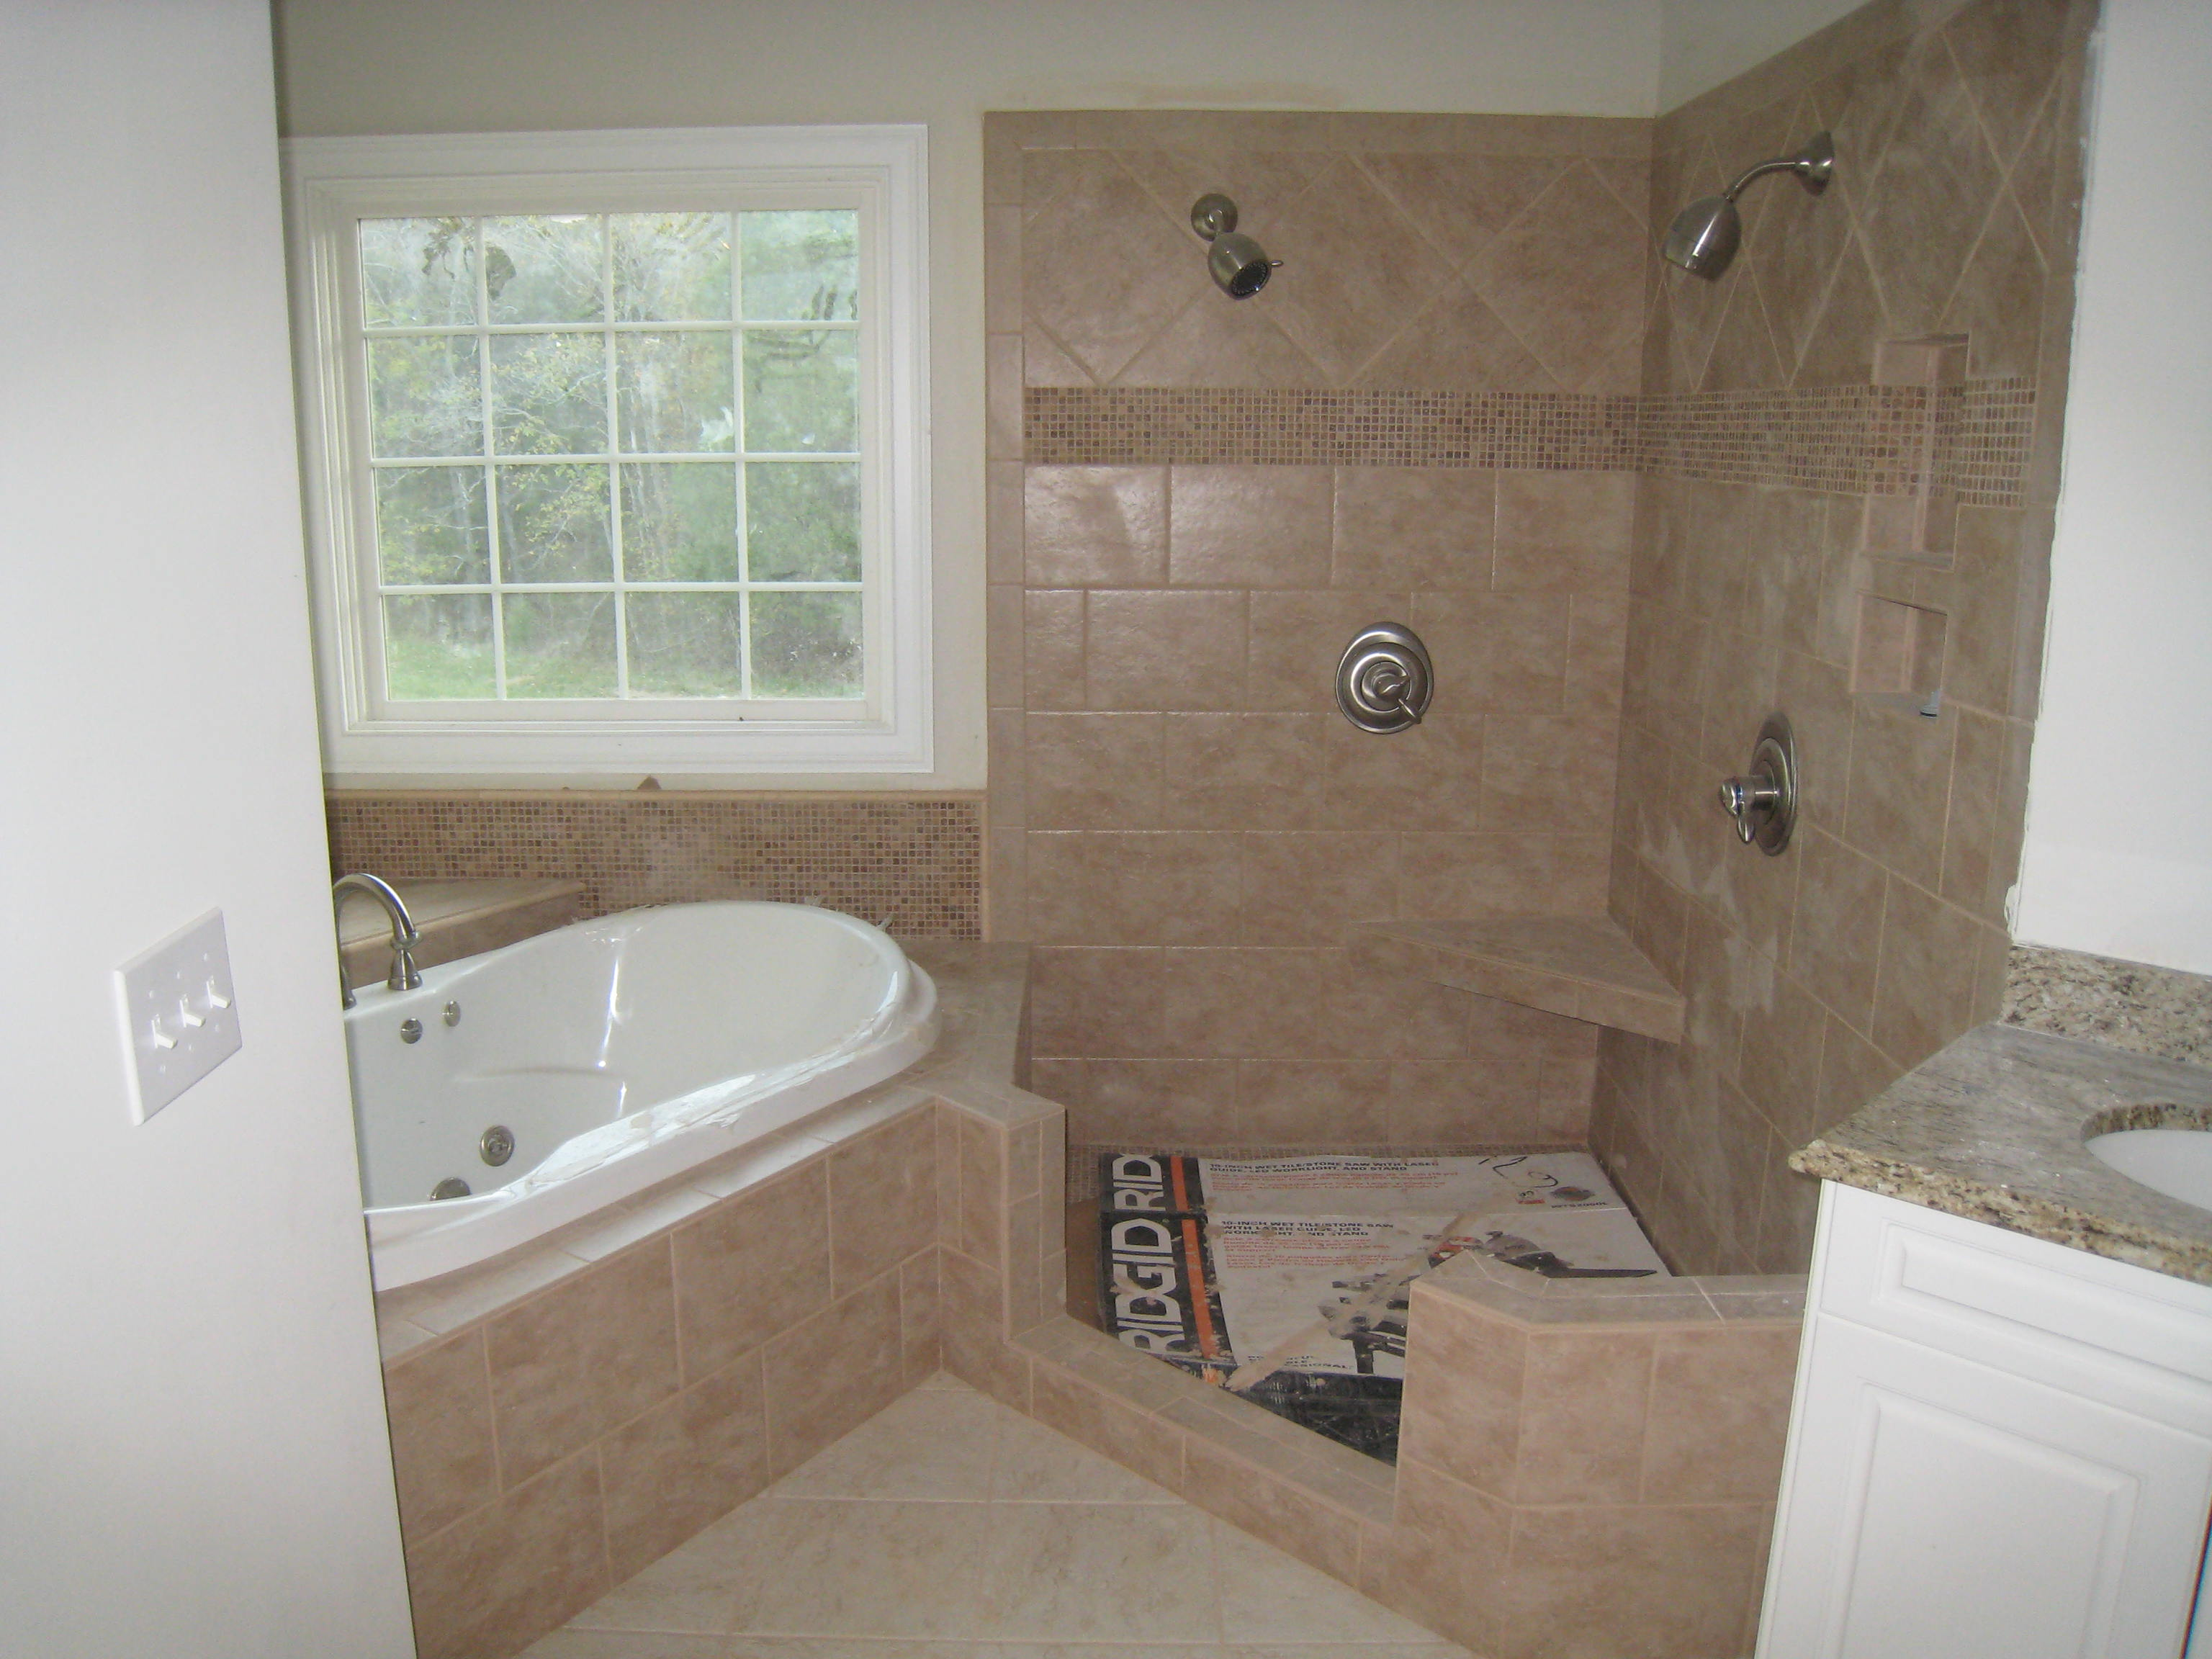 Custom bathtub and shower installations finished by home remodeling company Hedrick Creative Building, LLC in Lexington, NC